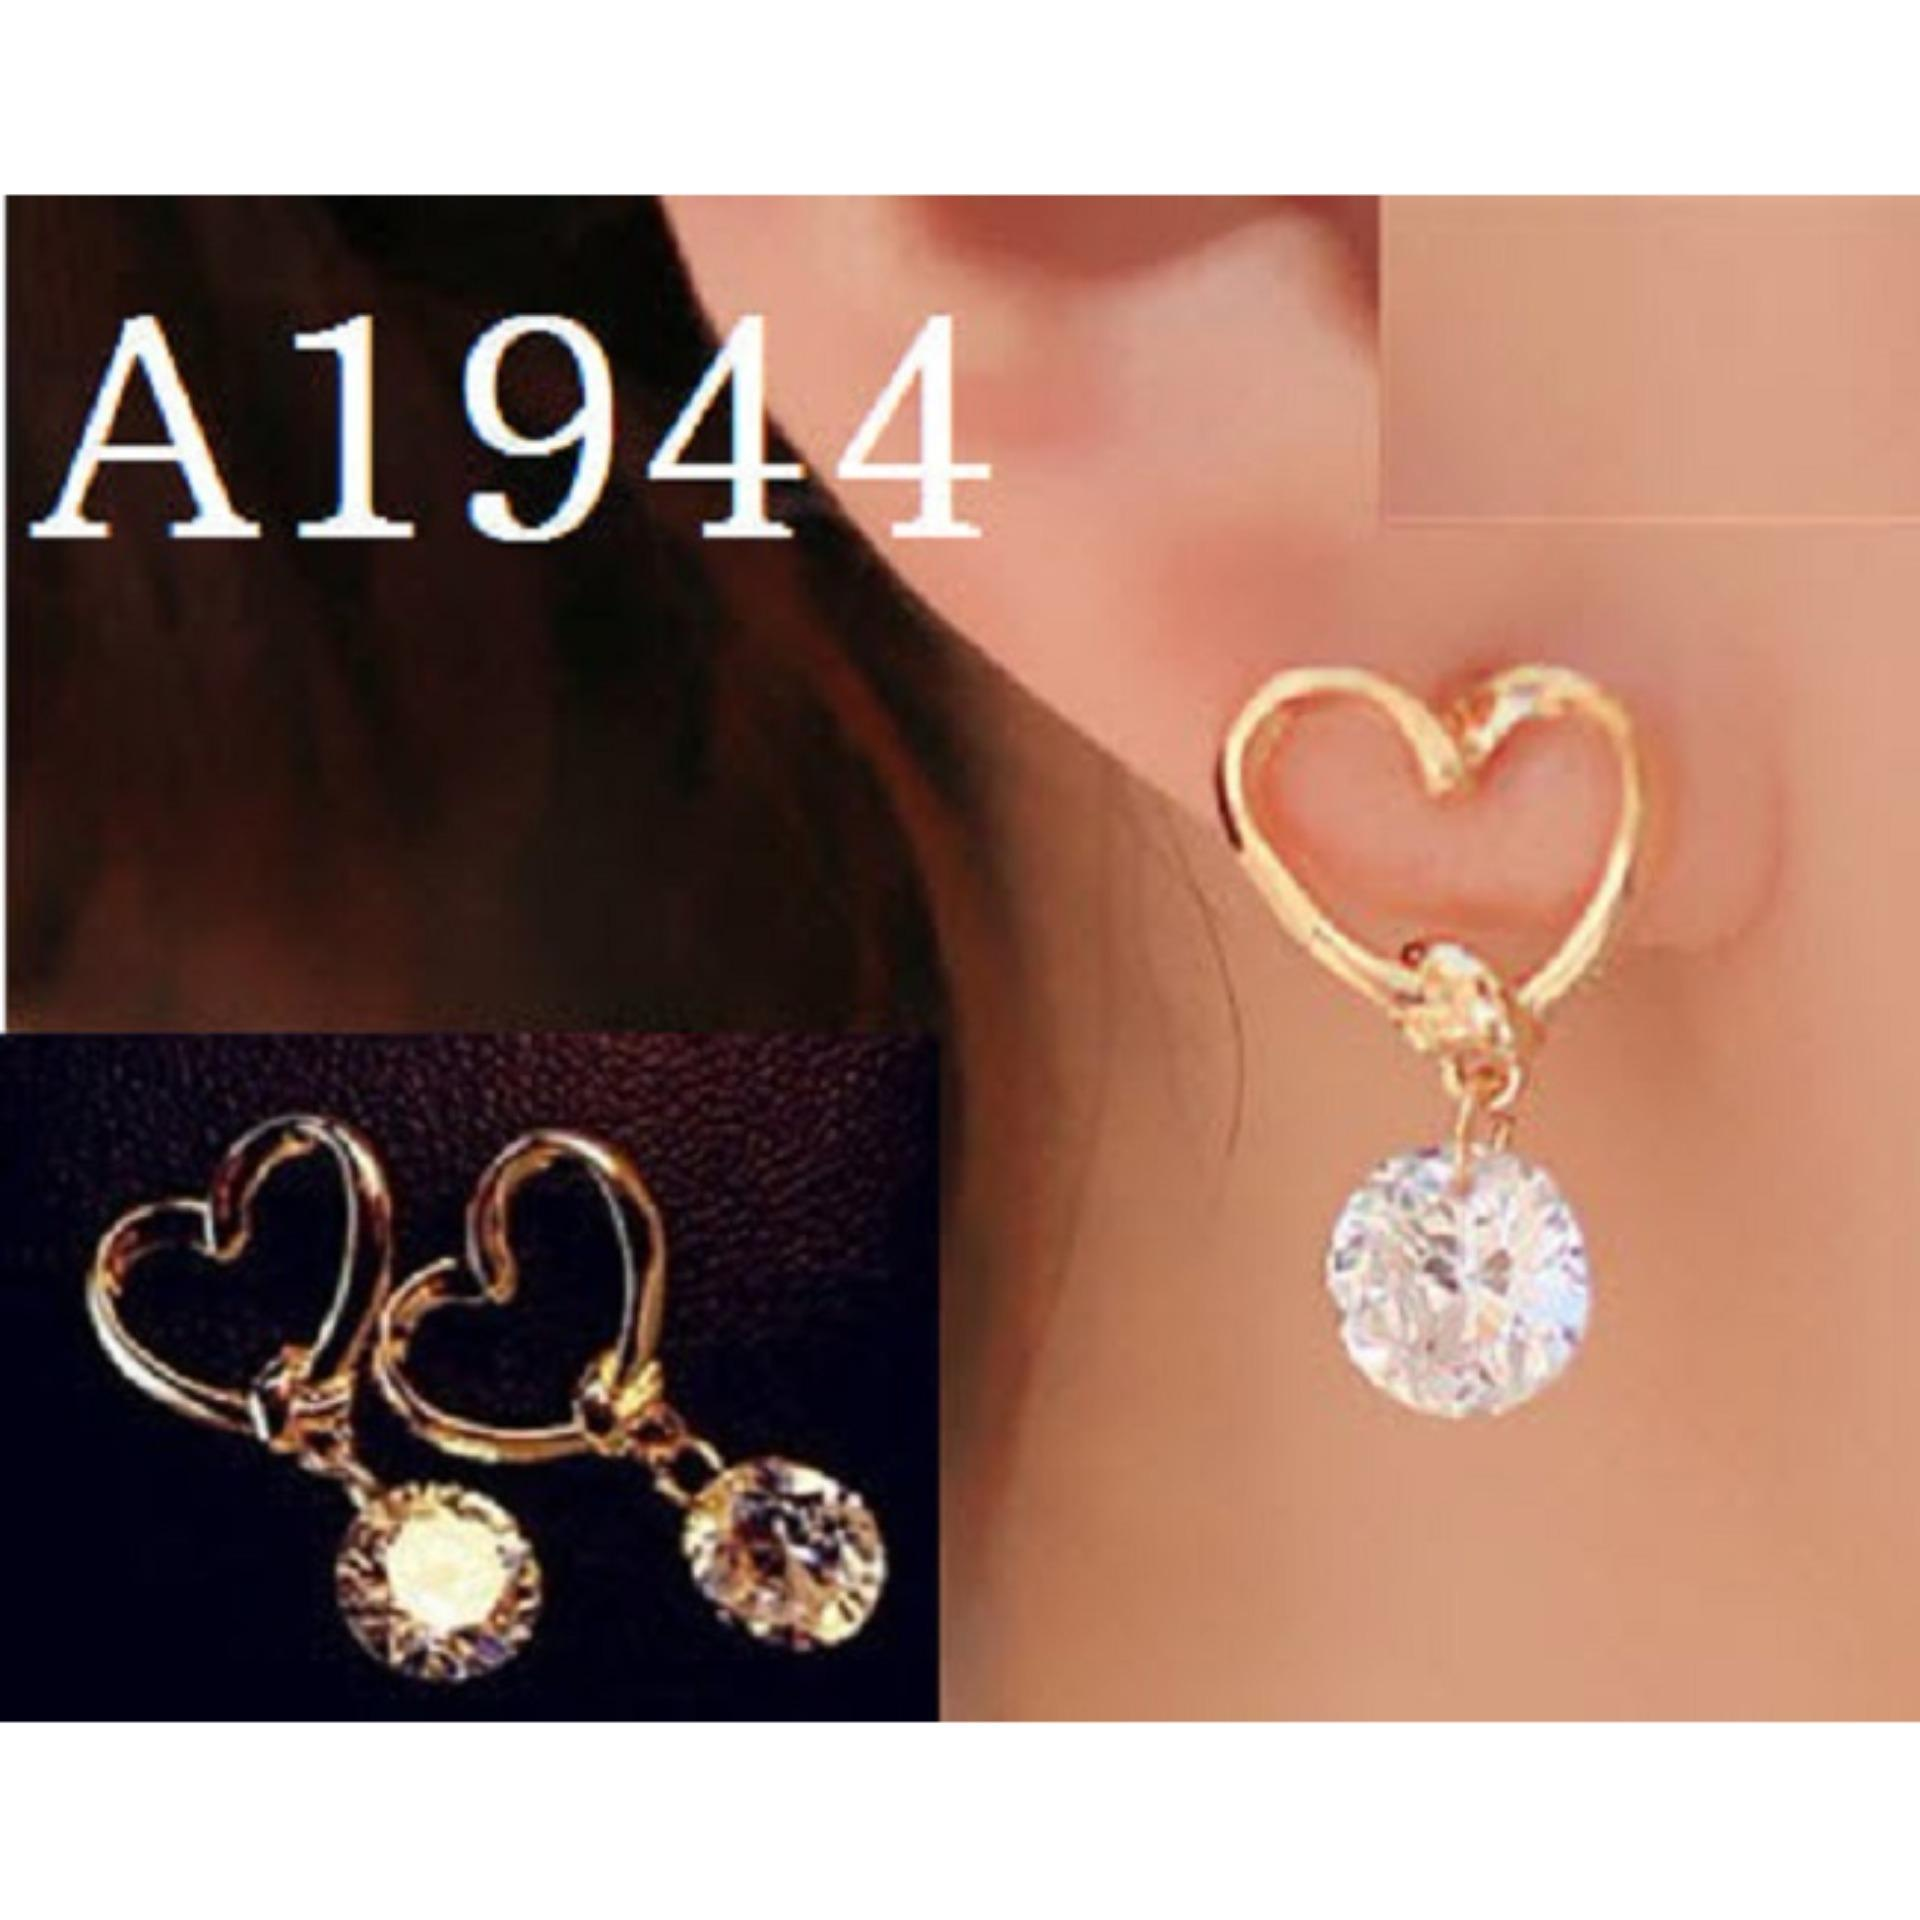 Anting Korea (Jual Perhiasan Set Gelang Cincin Kalung Xuping)